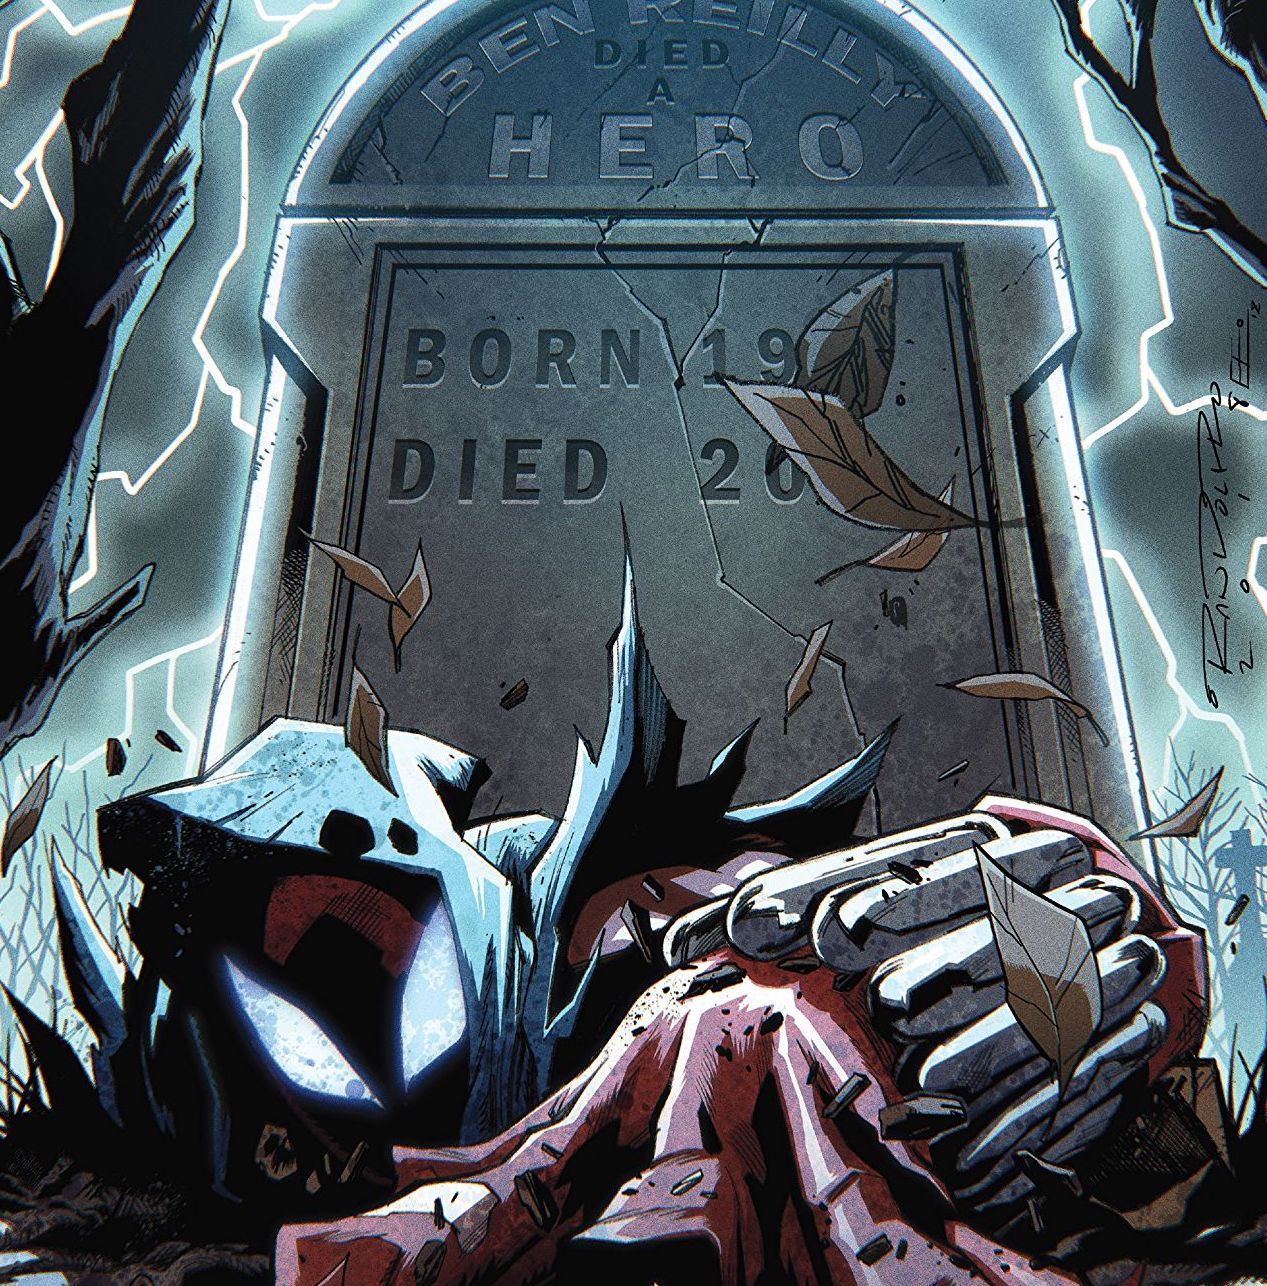 Ben Reilly: Scarlet Spider Vol. 5: Deal with the Devil Review